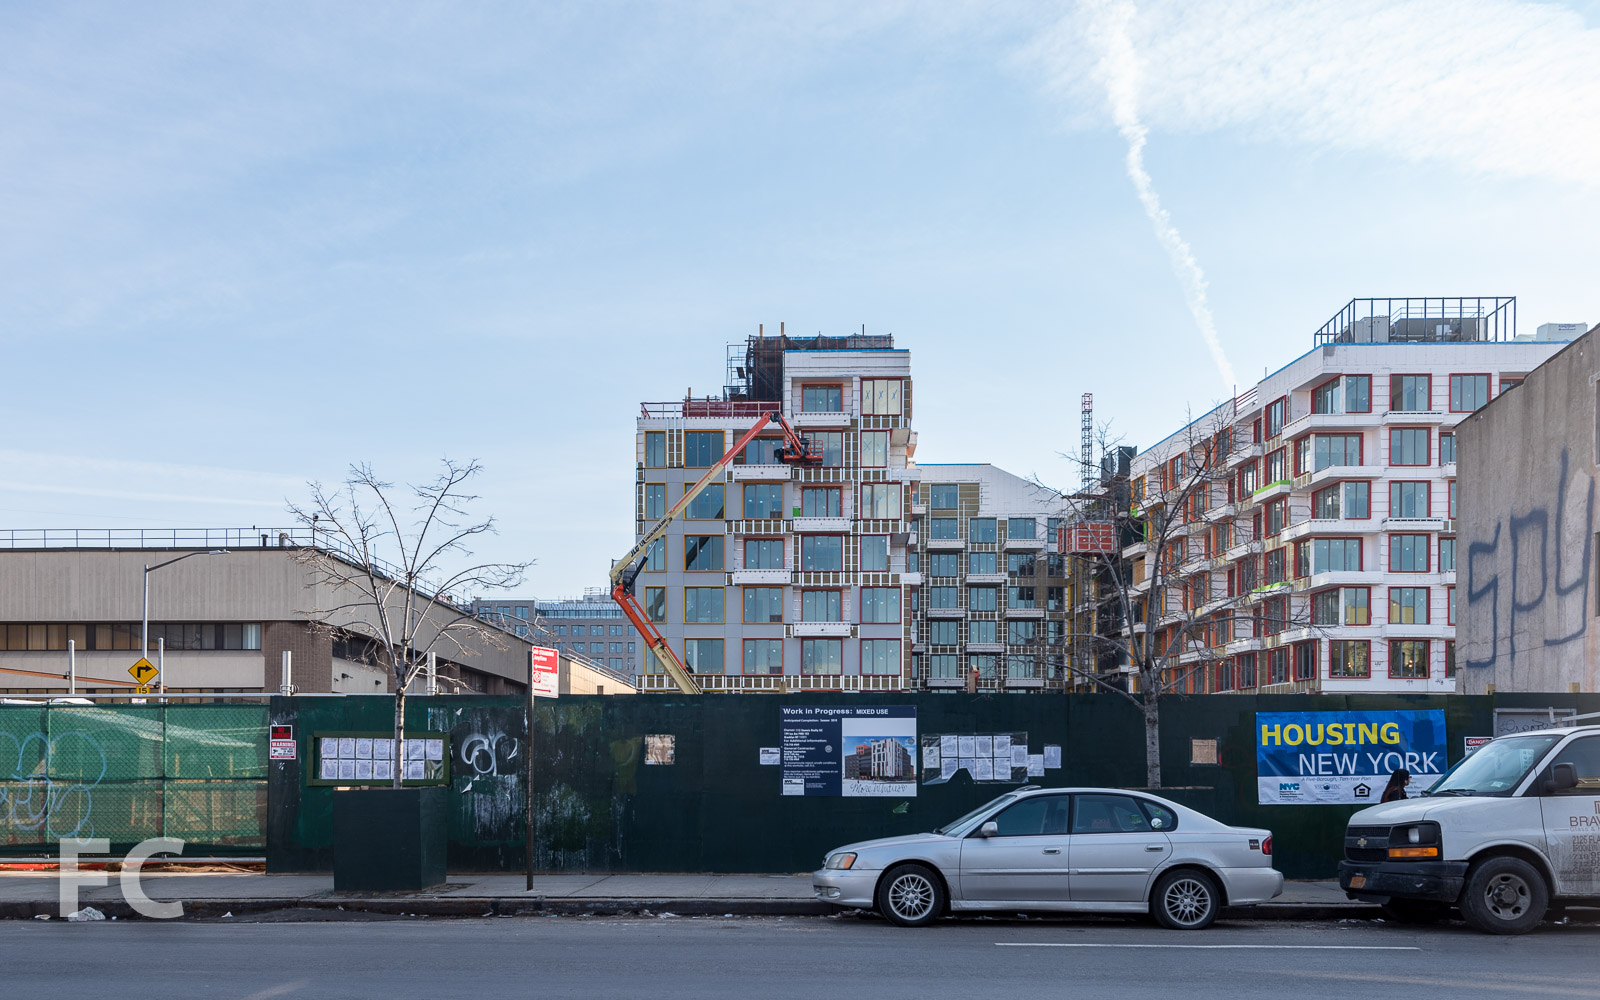 North facade from Flushing Avenue.